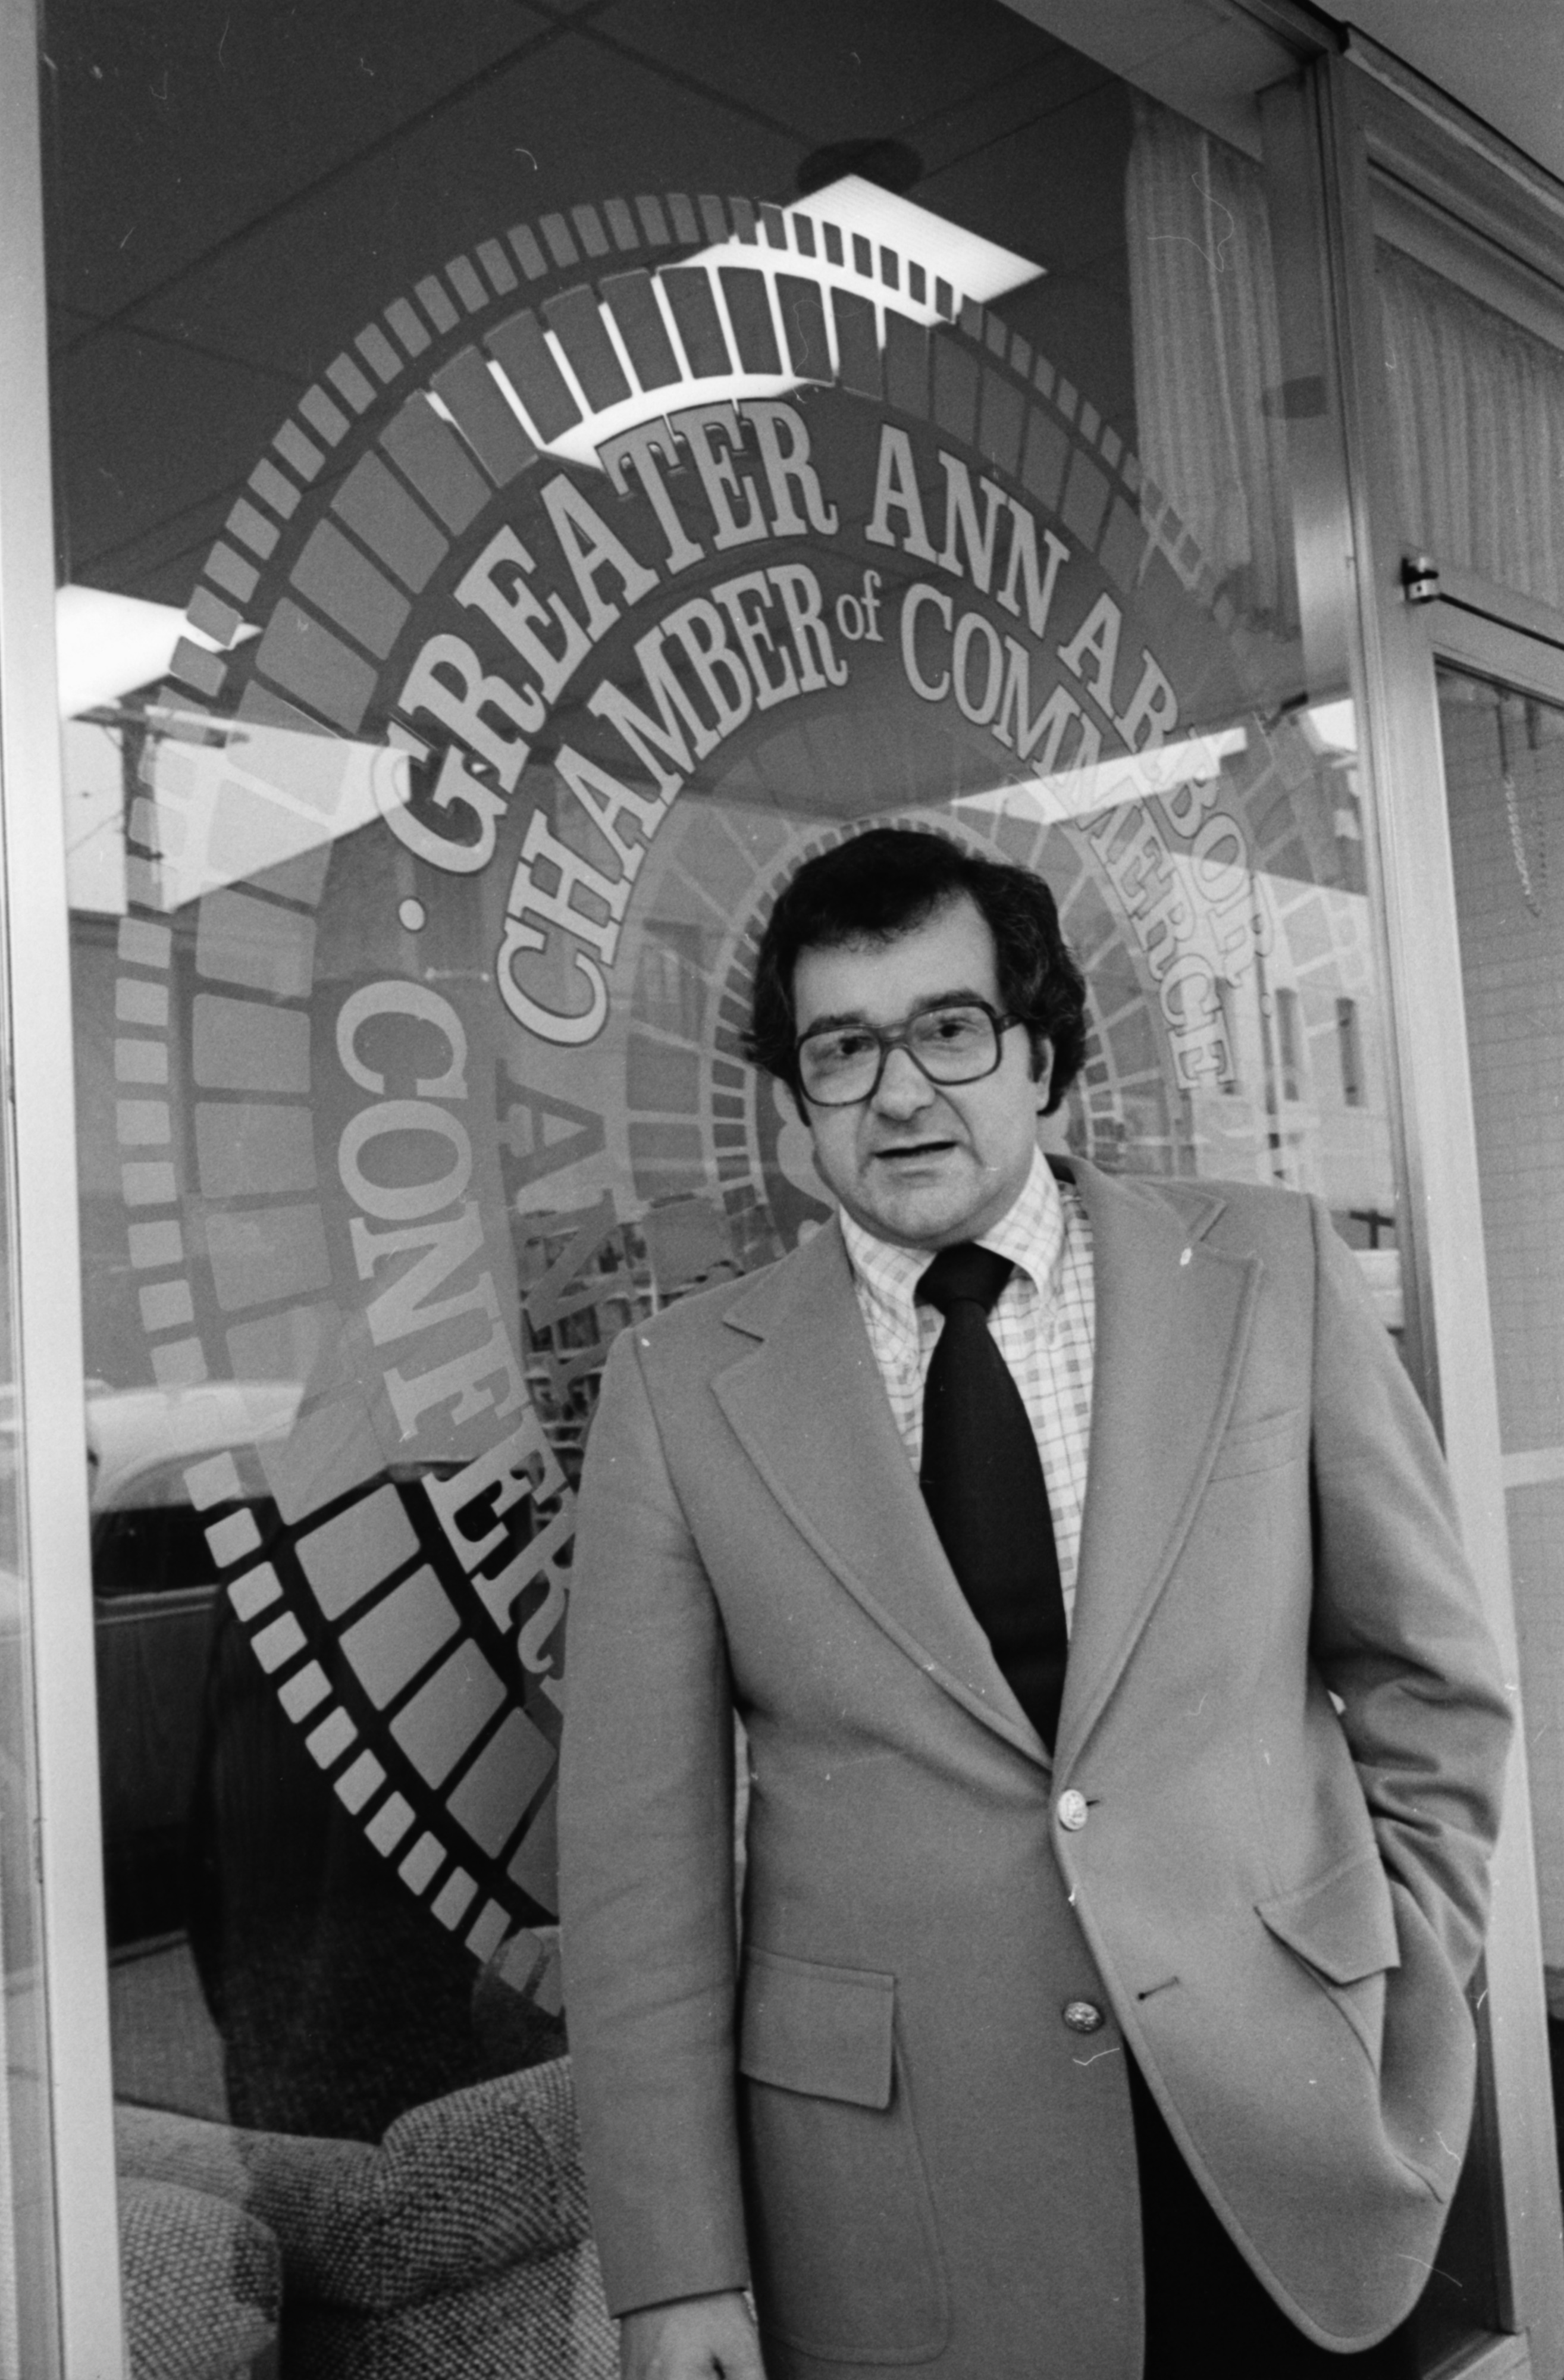 James Frenza, Executive Director of the Ann Arbor Chamber of Commerce, in Front of The Chamber of Commerce, September 1977 image